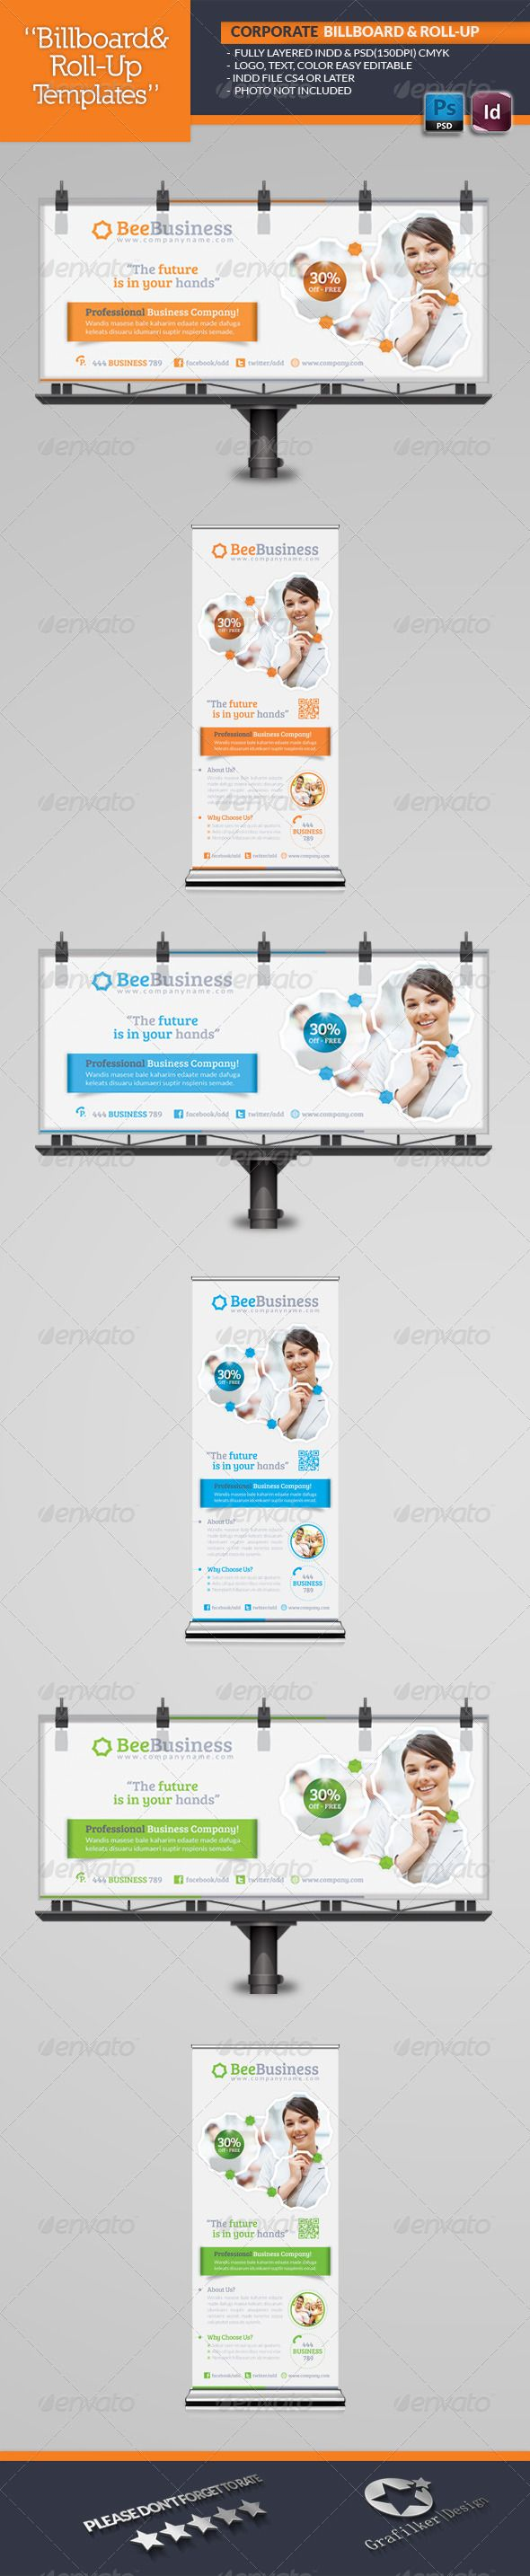 Corporate Billboard Template  #GraphicRiver        Corporate Billboard Template  Fully layered INDD   Fully layered PSD   70×30 and 30×70 Inches .Indd   70×30 and 30×70 150 Dpi .Psd   Fully layered PSD   300 Dpi, CMYK   IDML format open Indesign CS4 or later  Completely editable, print ready  Text/Font or Color can be altered as needed  All Image are in vector format, so can customise easily  Images Not Inculed  Font Links: Lato Font:  .fontsquirrel /fonts/lato Bree-serif:  .fontsquirrel…